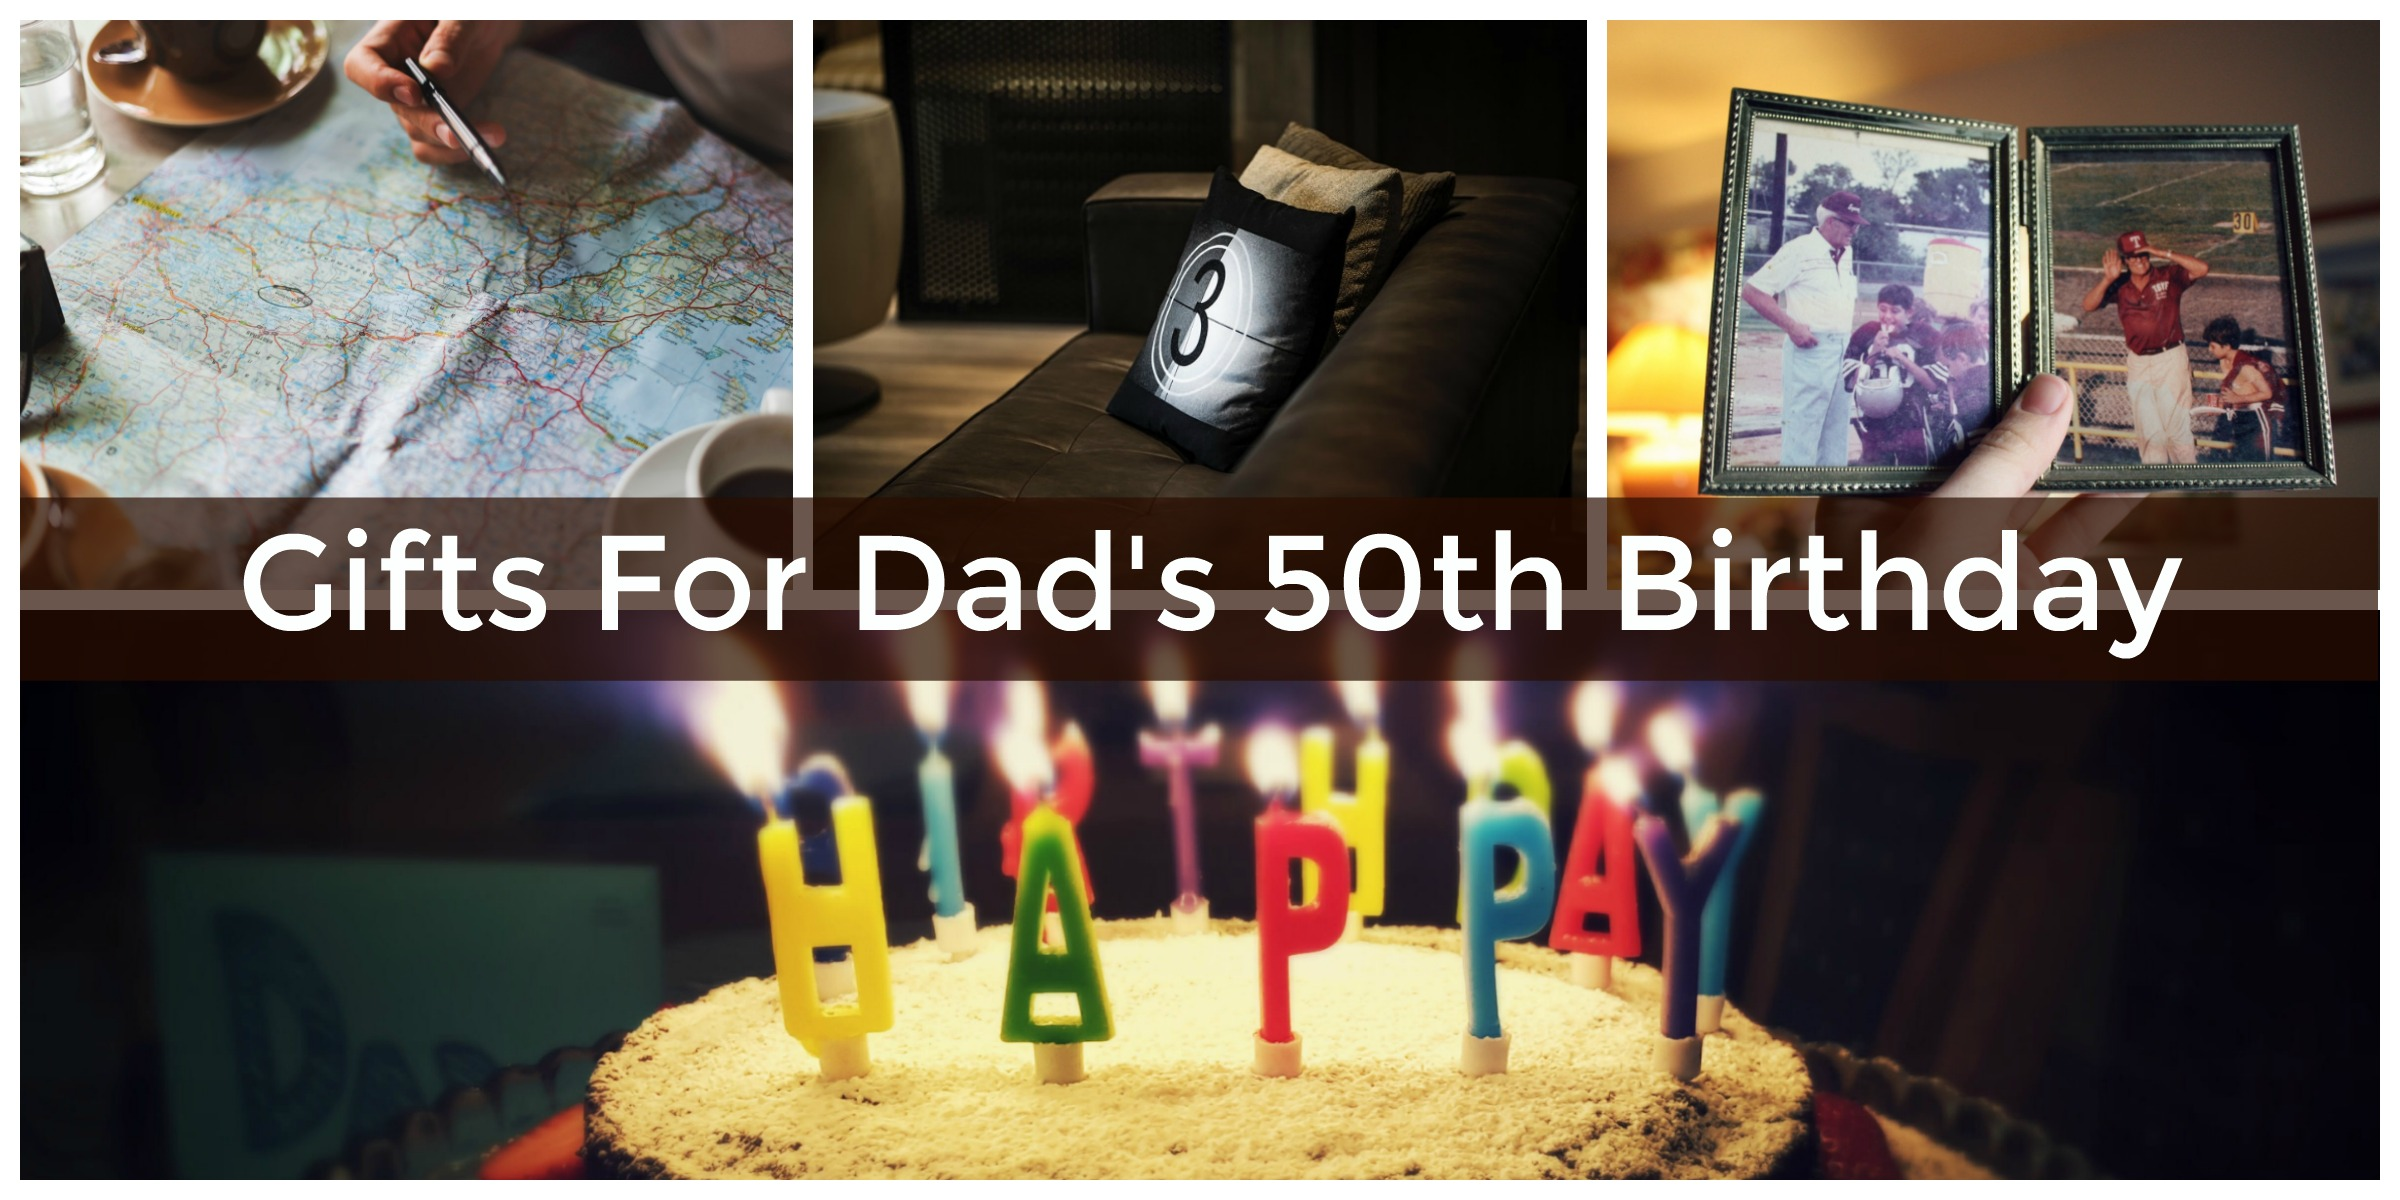 Make Dad Feel Special On His 50th